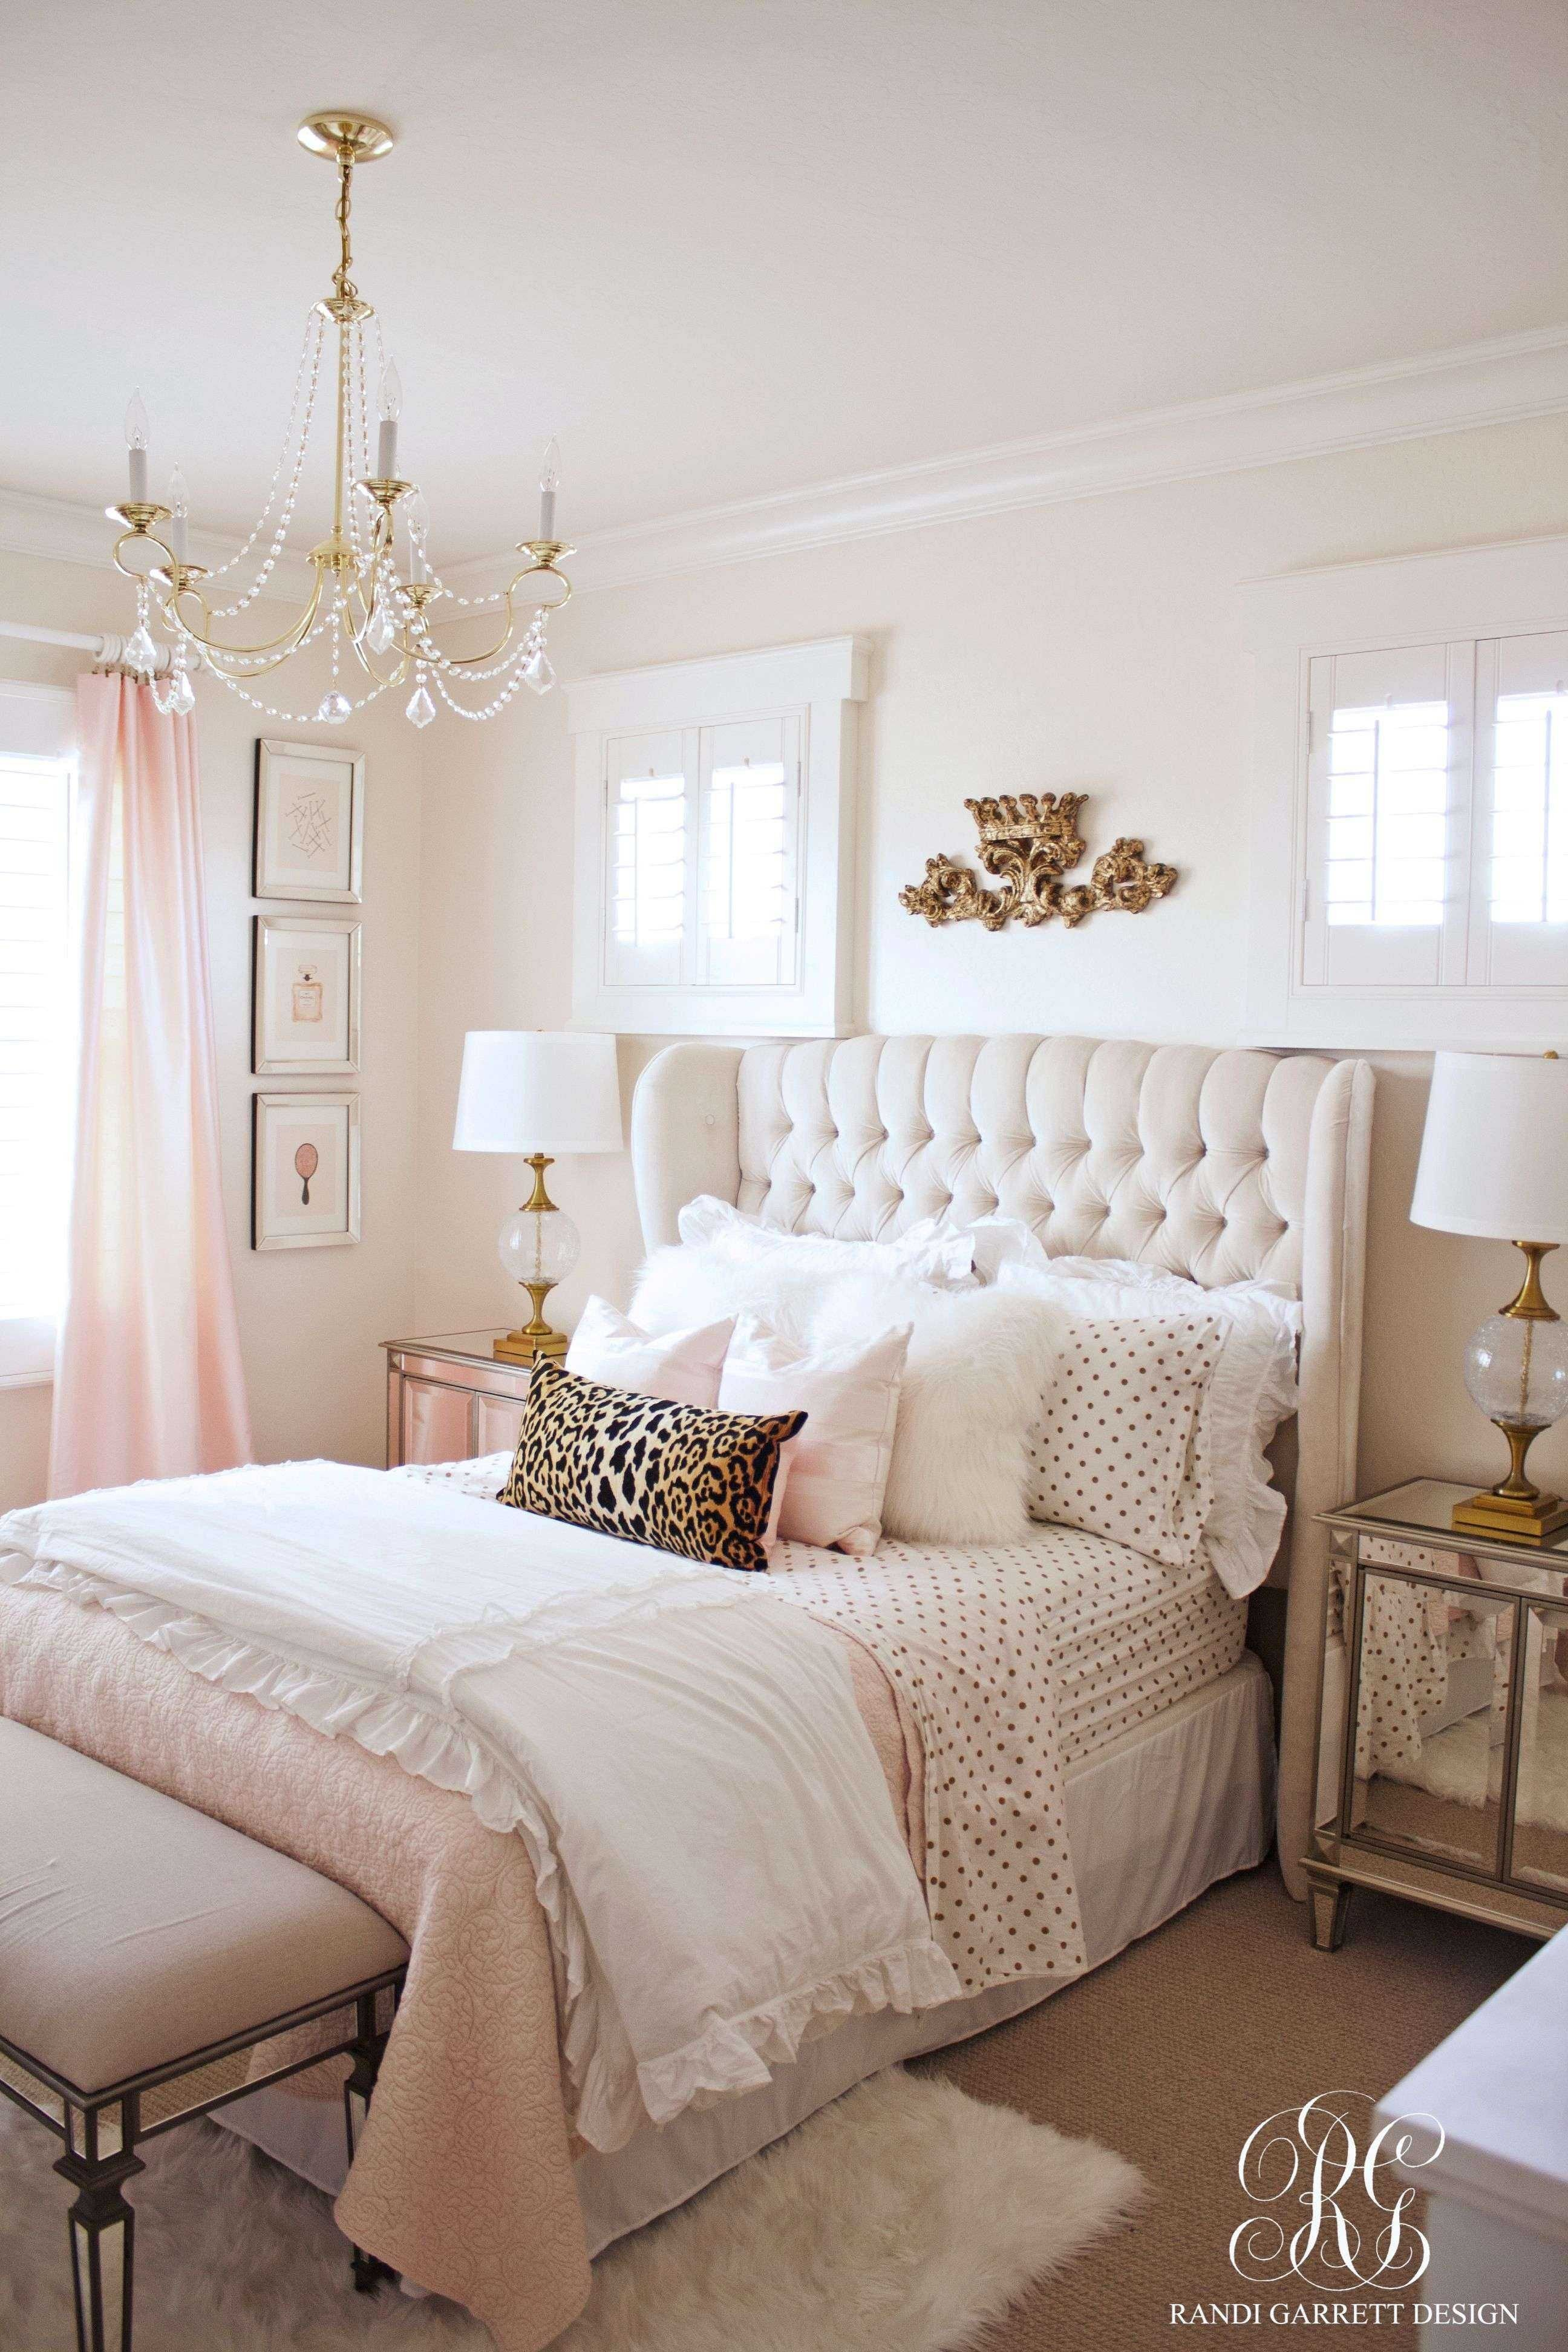 Pink and Gold Bedroom Set Awesome Country Chic Rustic Glam Bedroom Awesome Country Chic